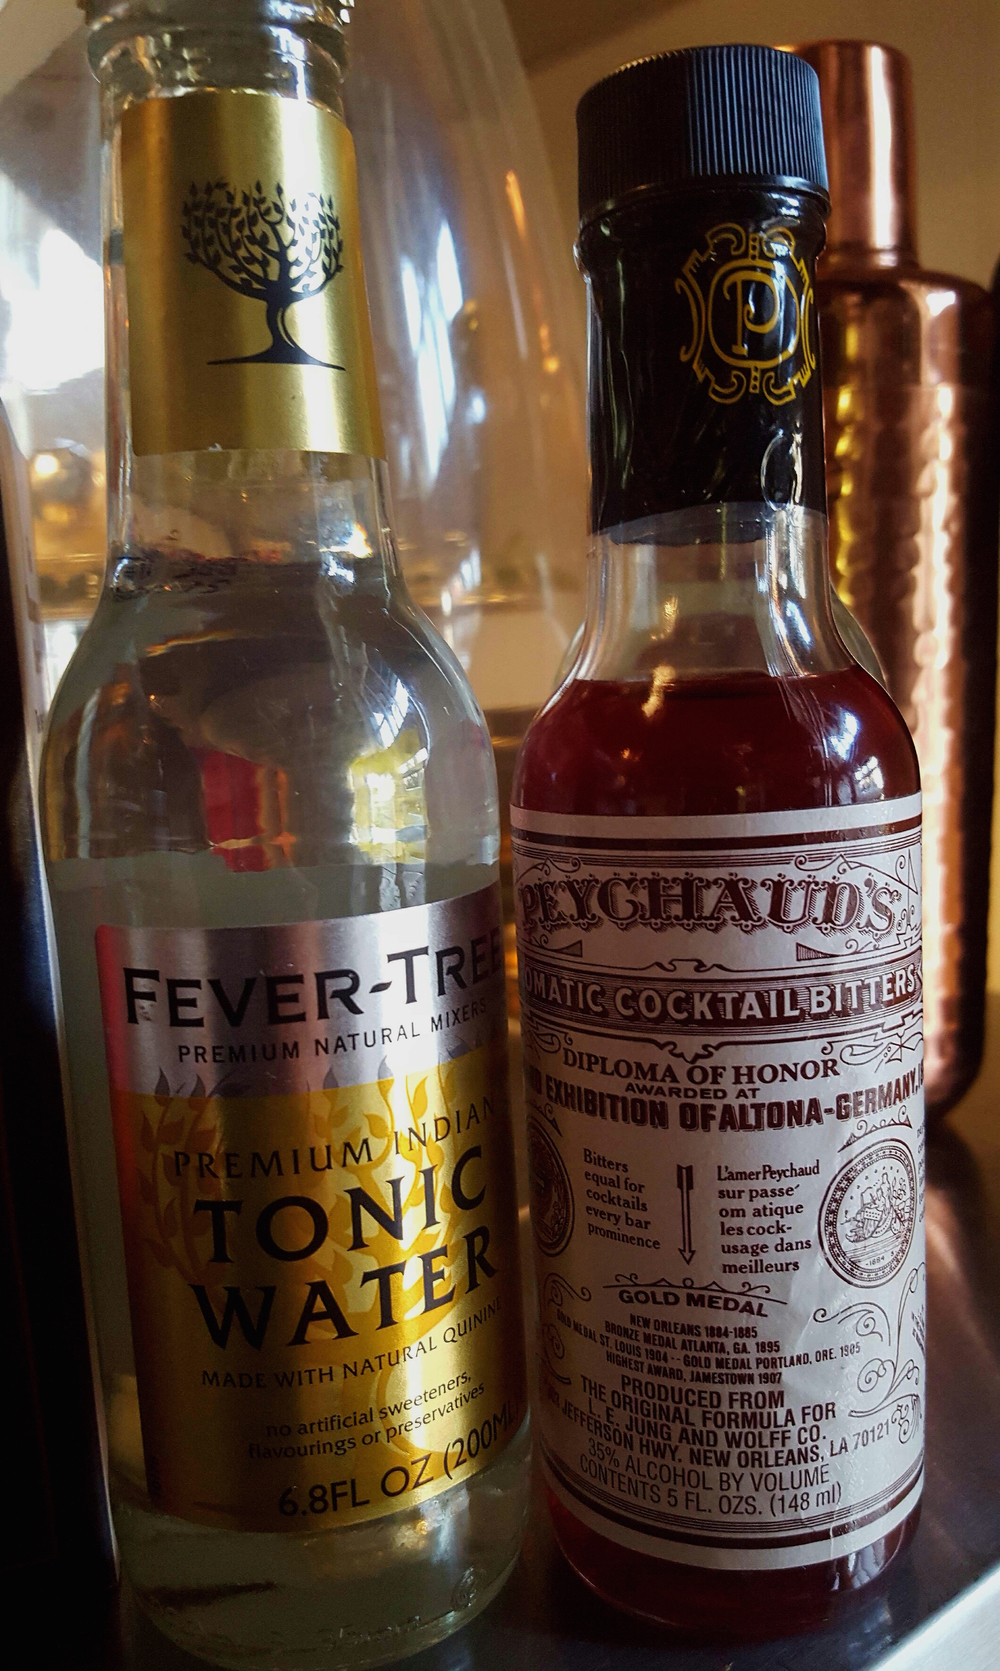 Fever Tree Tonic & Peychaud's Bitters